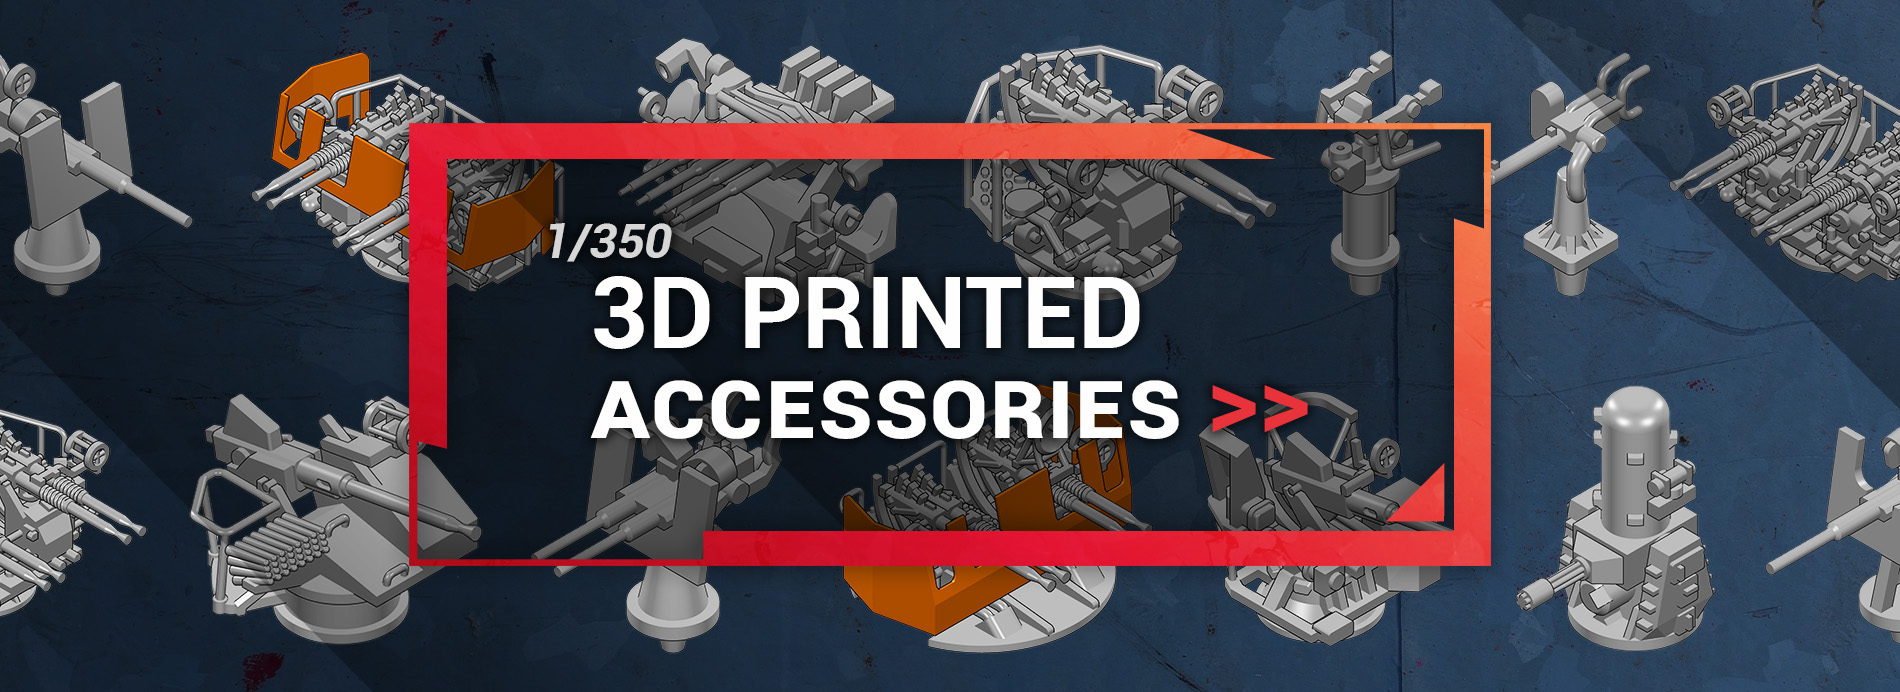 3D Printed Accessories